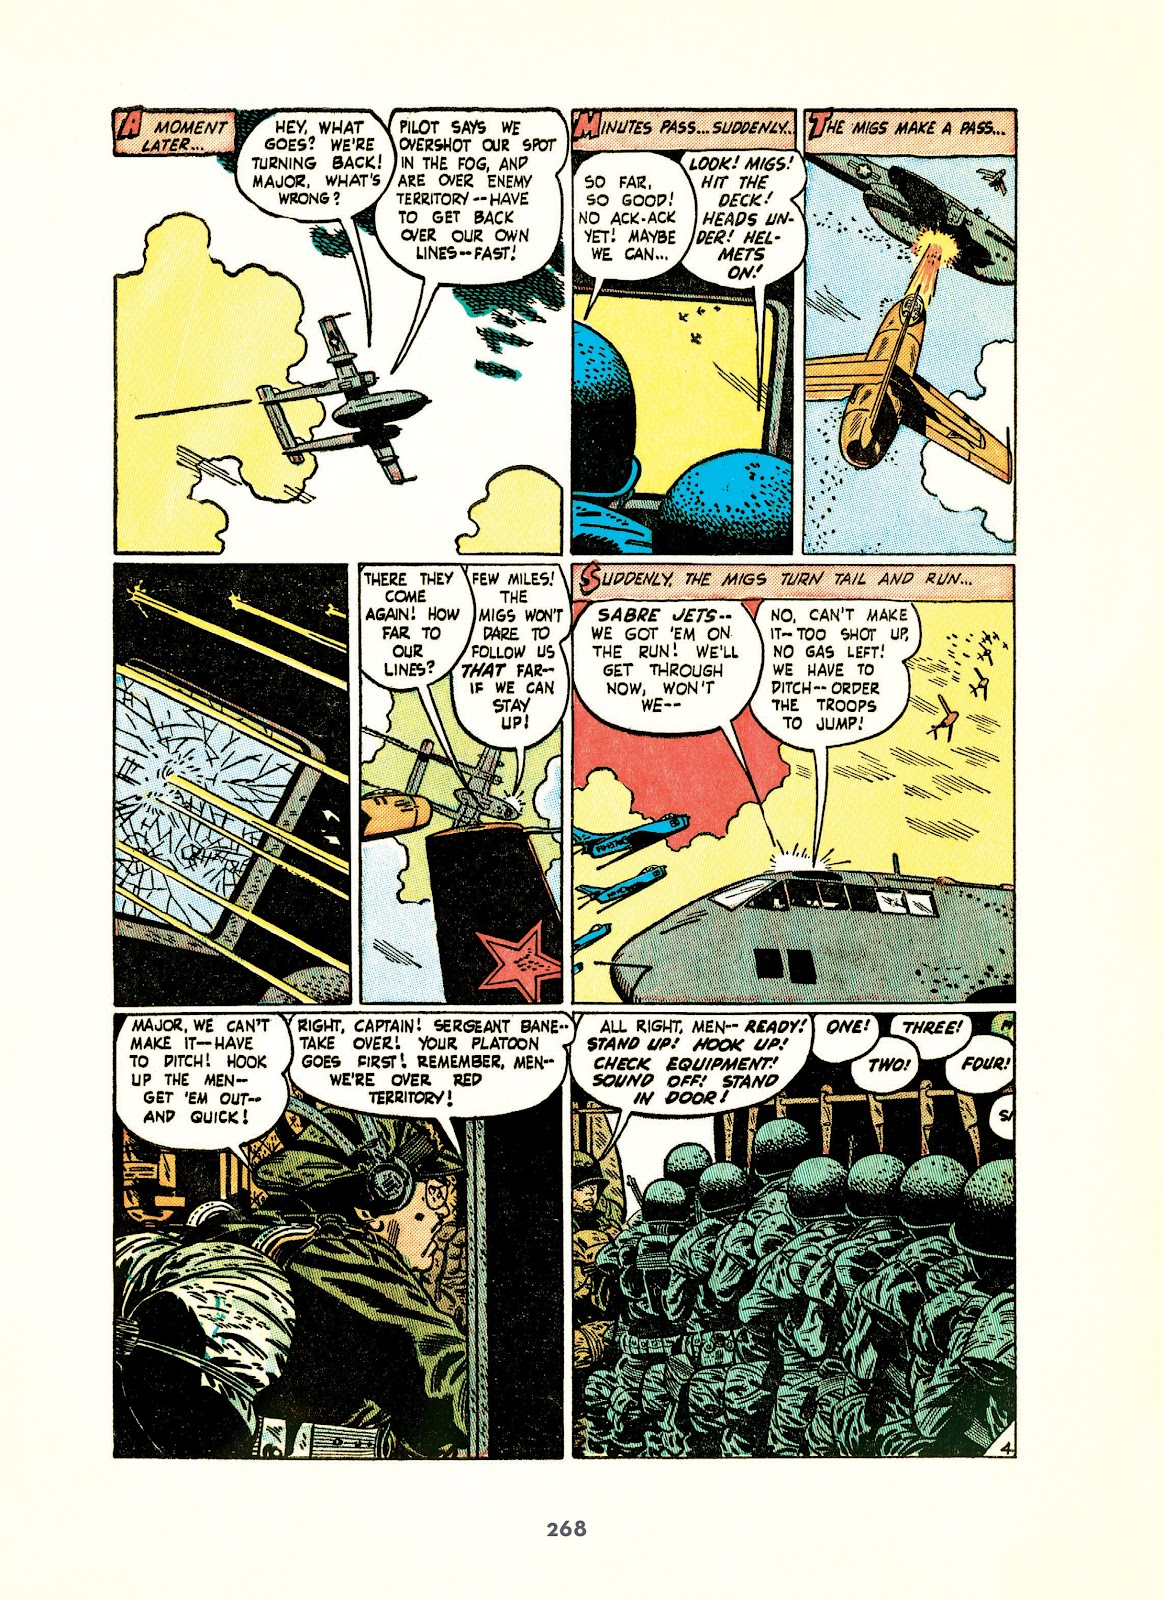 Read online Setting the Standard: Comics by Alex Toth 1952-1954 comic -  Issue # TPB (Part 3) - 69